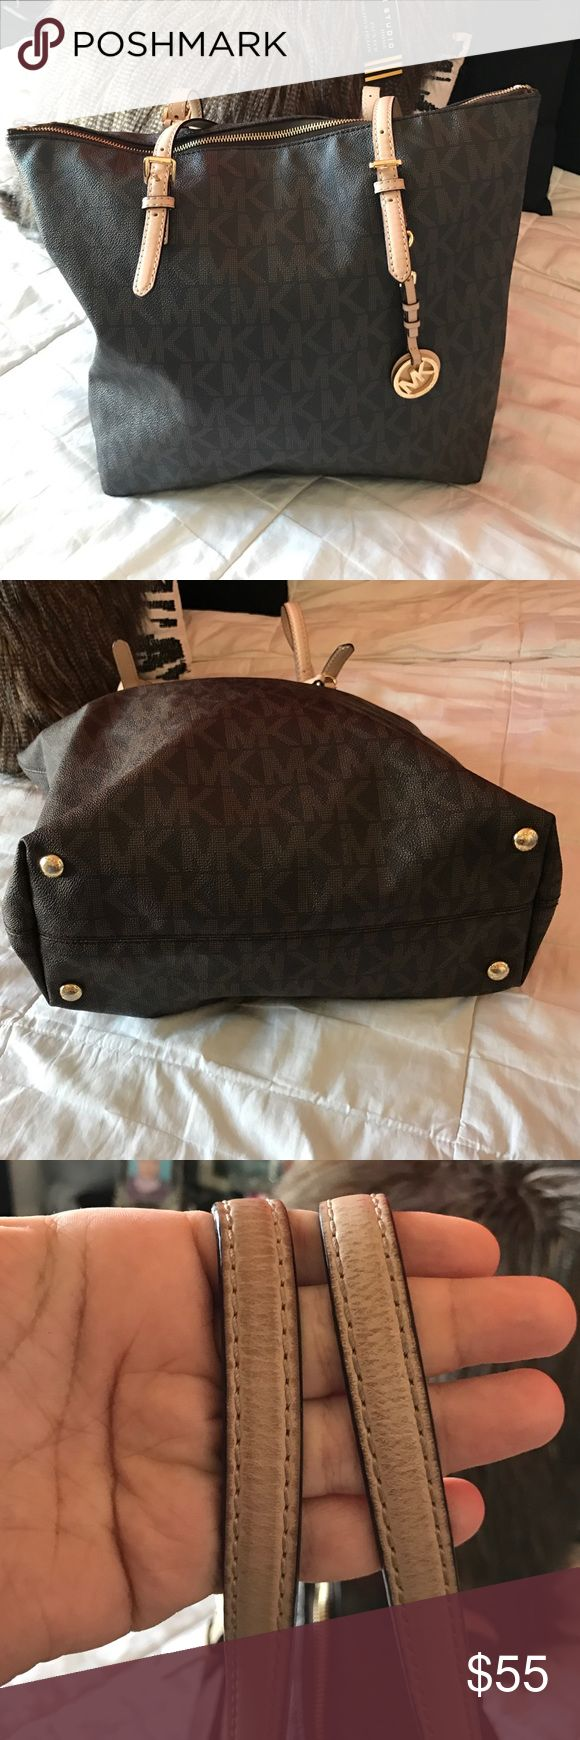 Michael kors bag Used but still in good condition .. no scuffs or tear or marks..some fading on the hard ware .. Michael Kors Bags Shoulder Bags